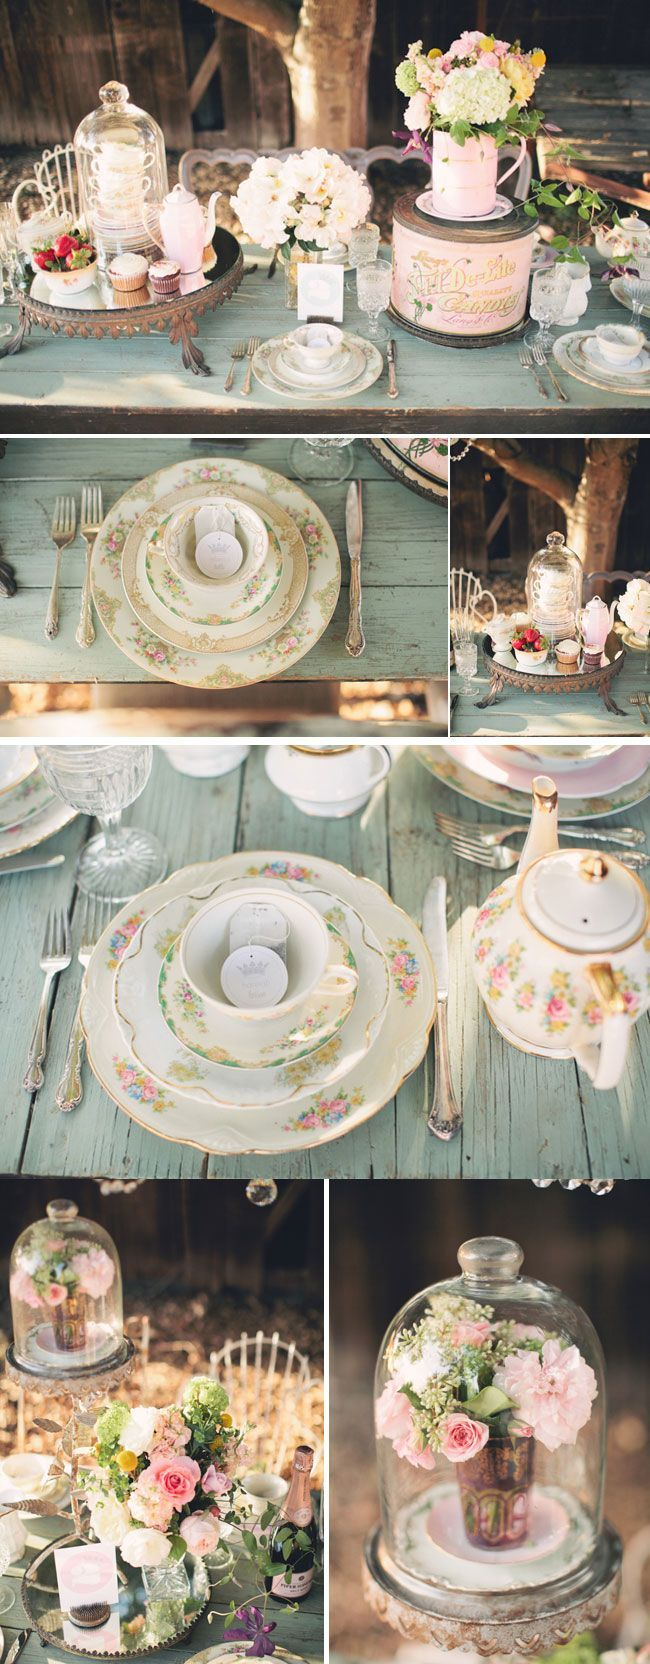 "hoopskirtsociety: ""Victorian Tea Party Inspiration """